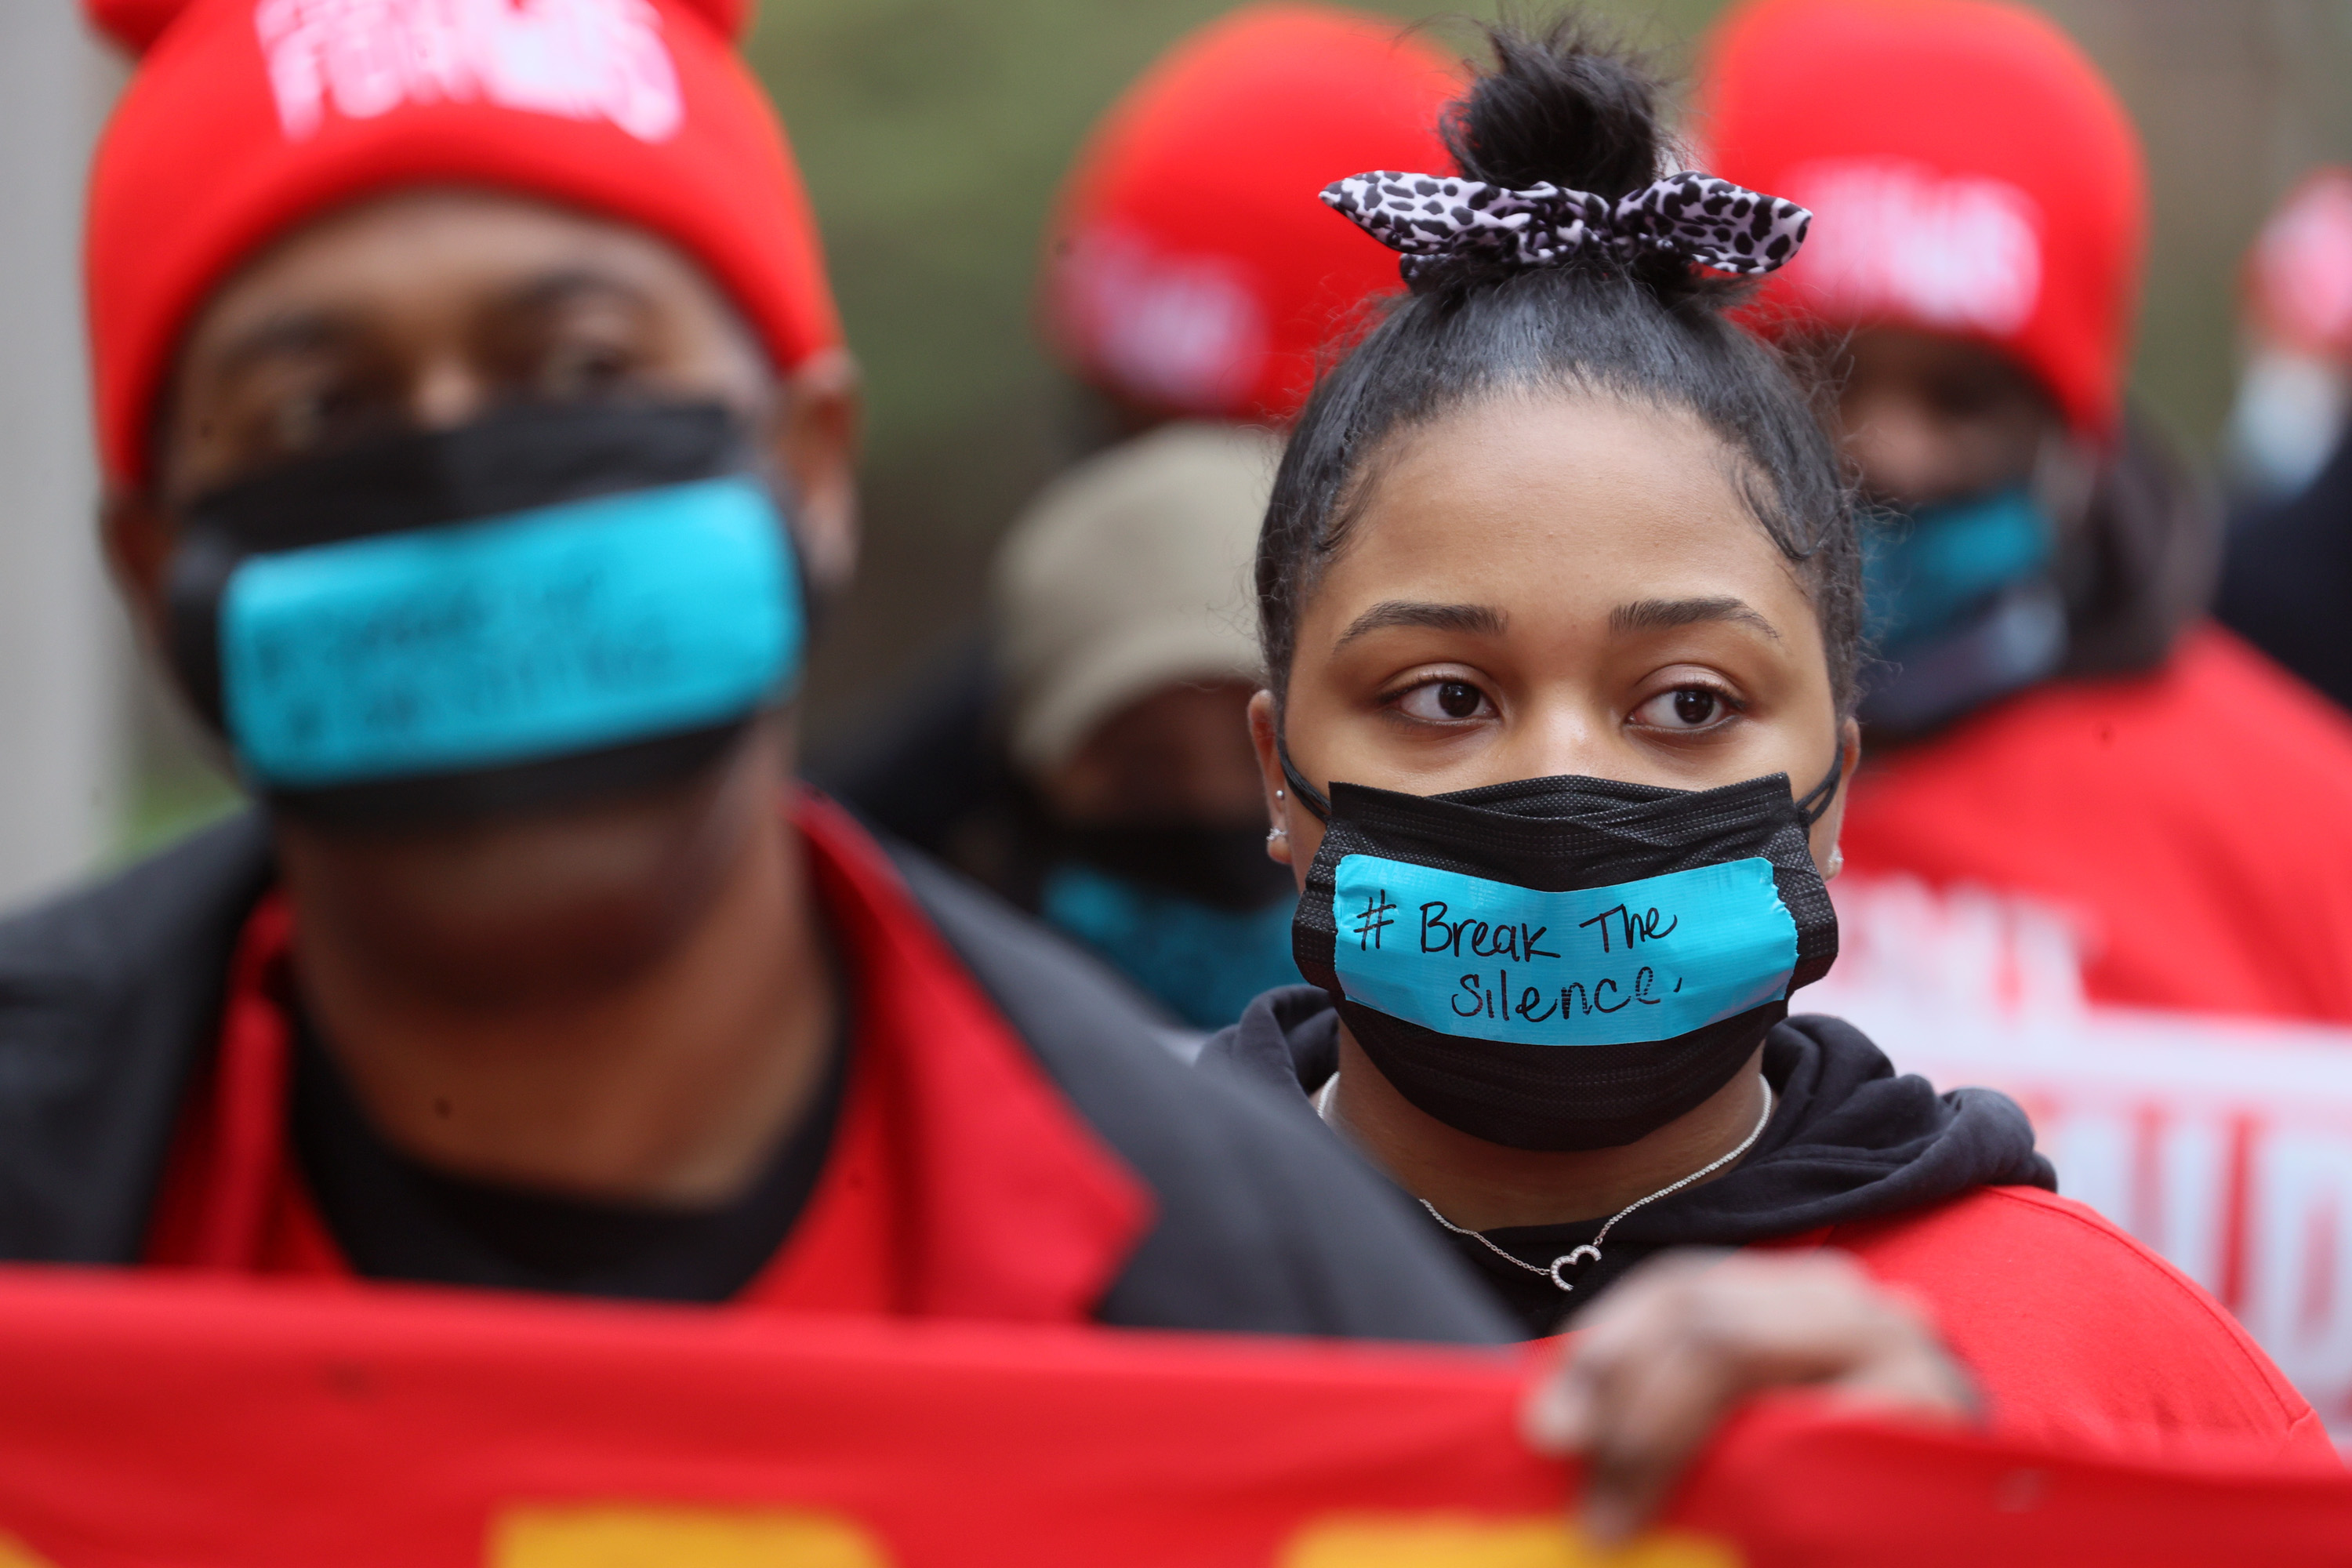 """A man and a woman, both wearing black facemasks with blue stickers on the front that say """"Break the Silence"""", carry a red protest sign together"""